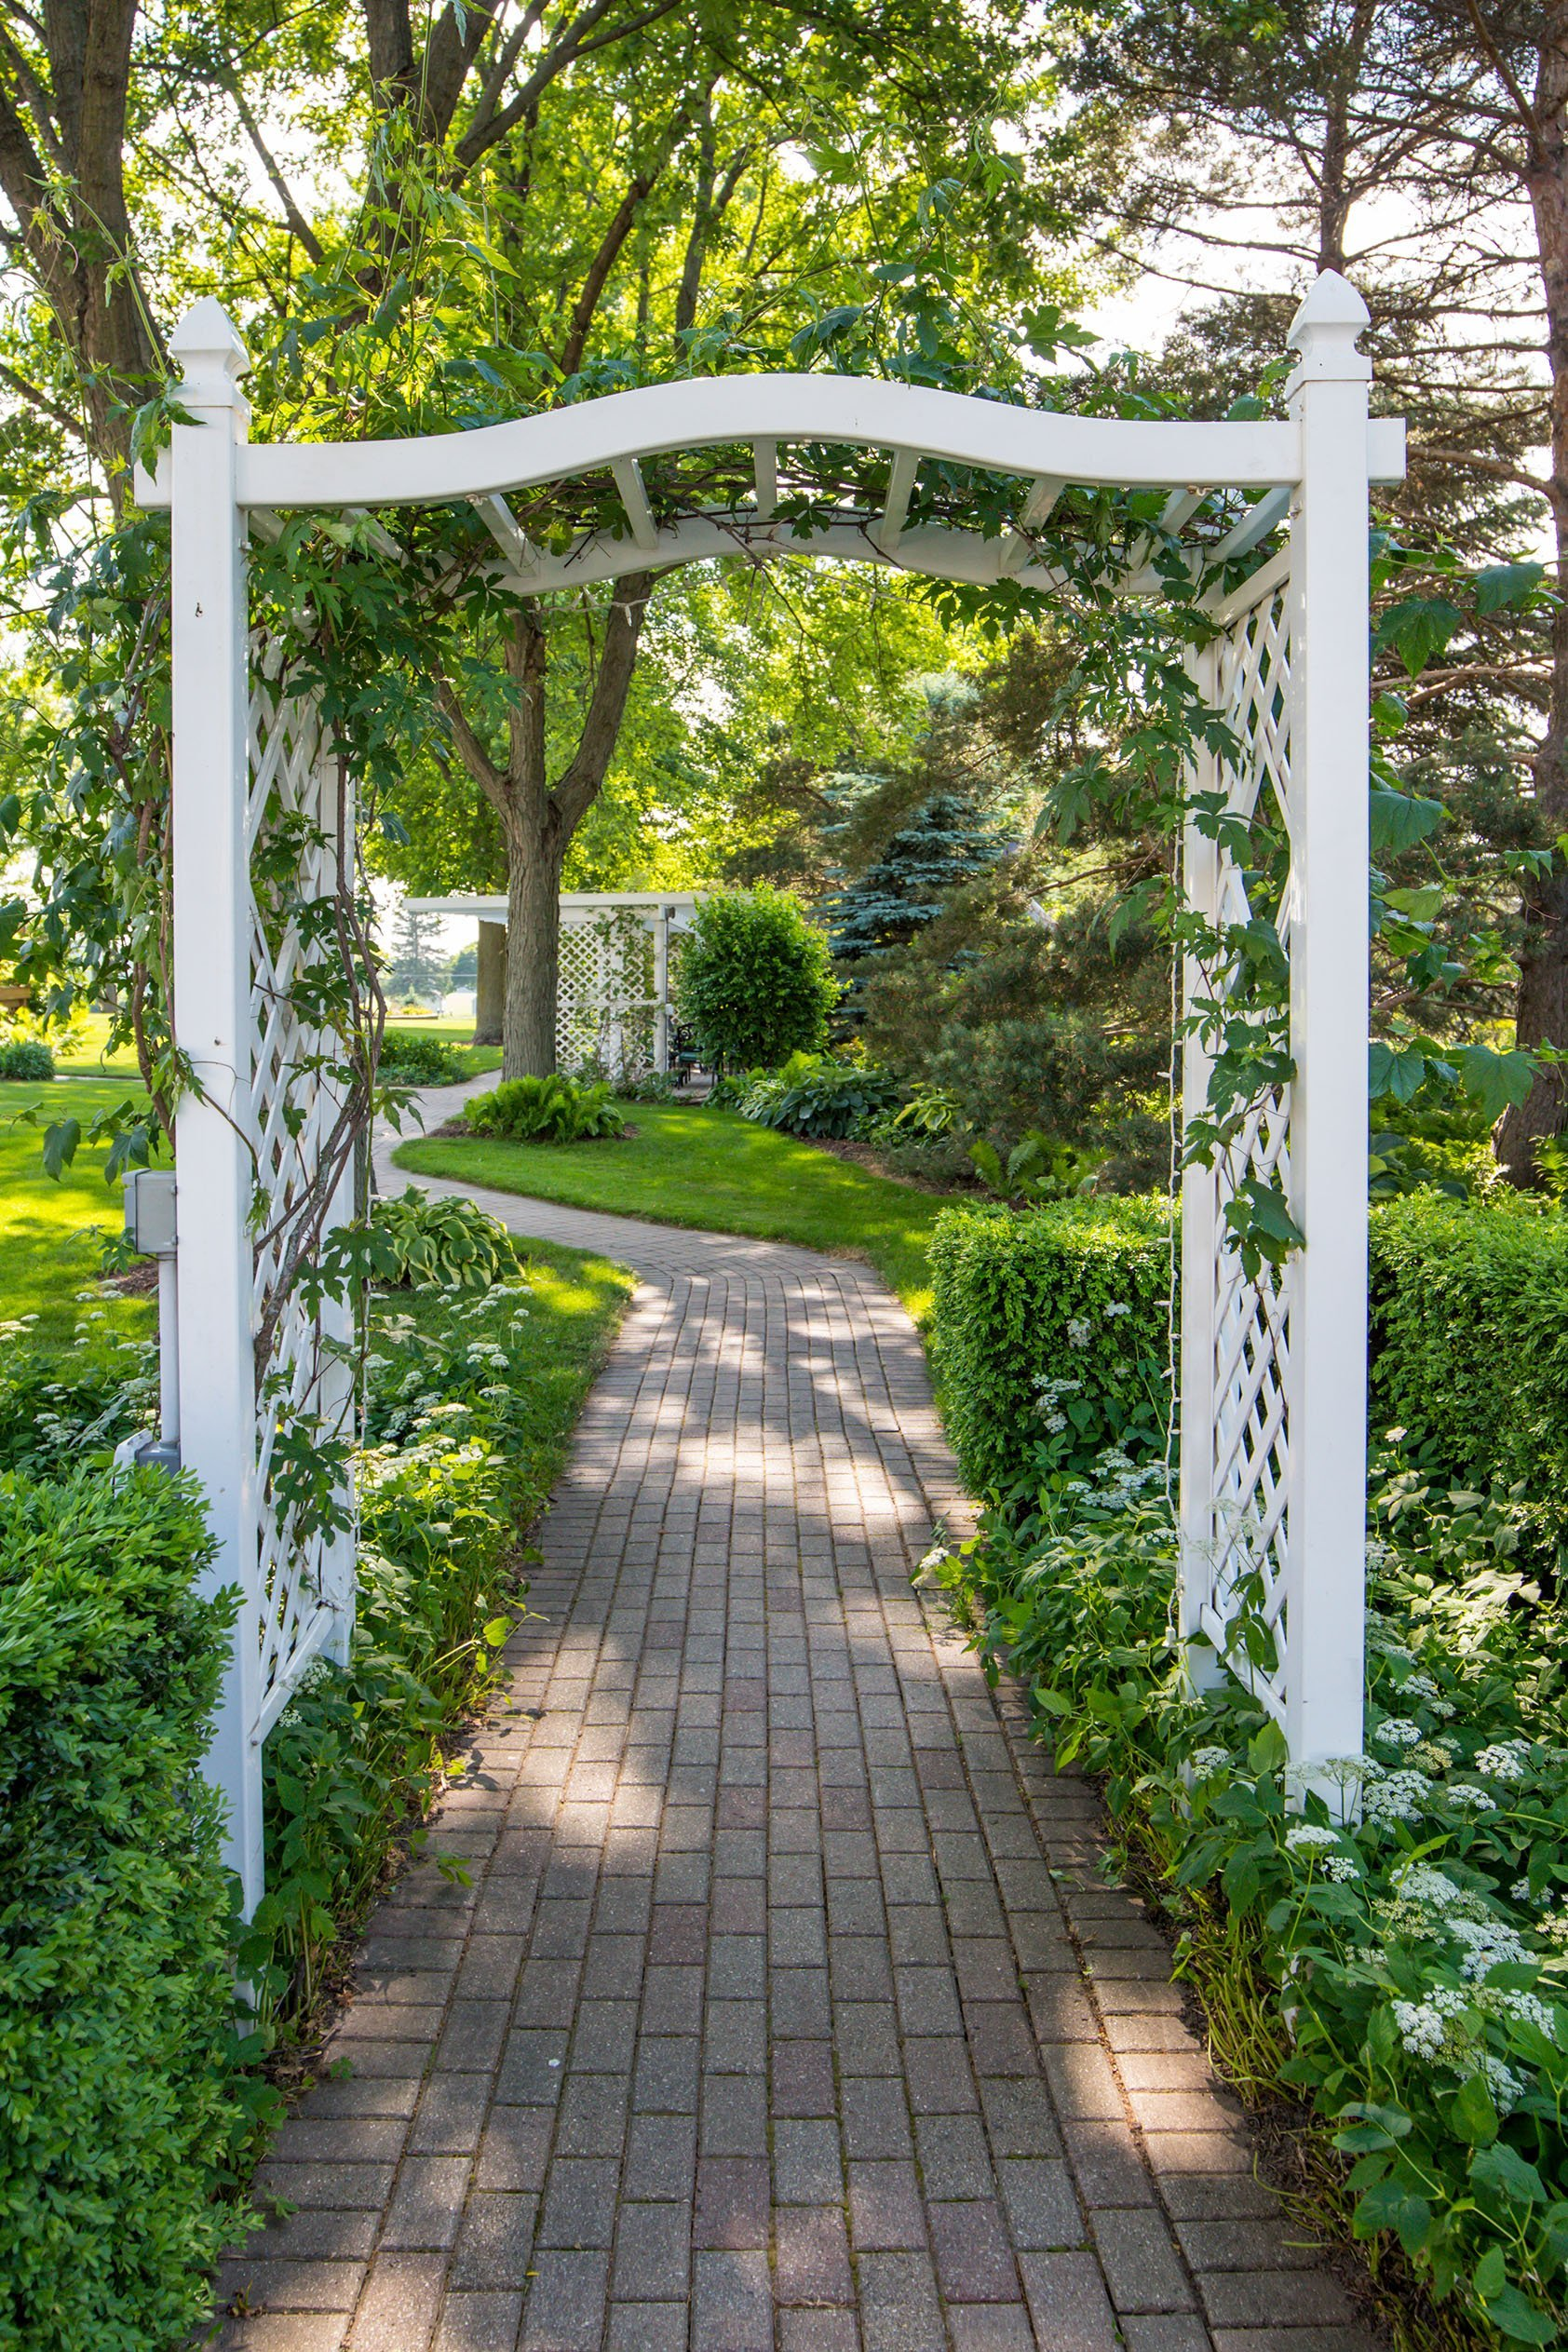 Grounds & Garden path through our ivy colored trellis.